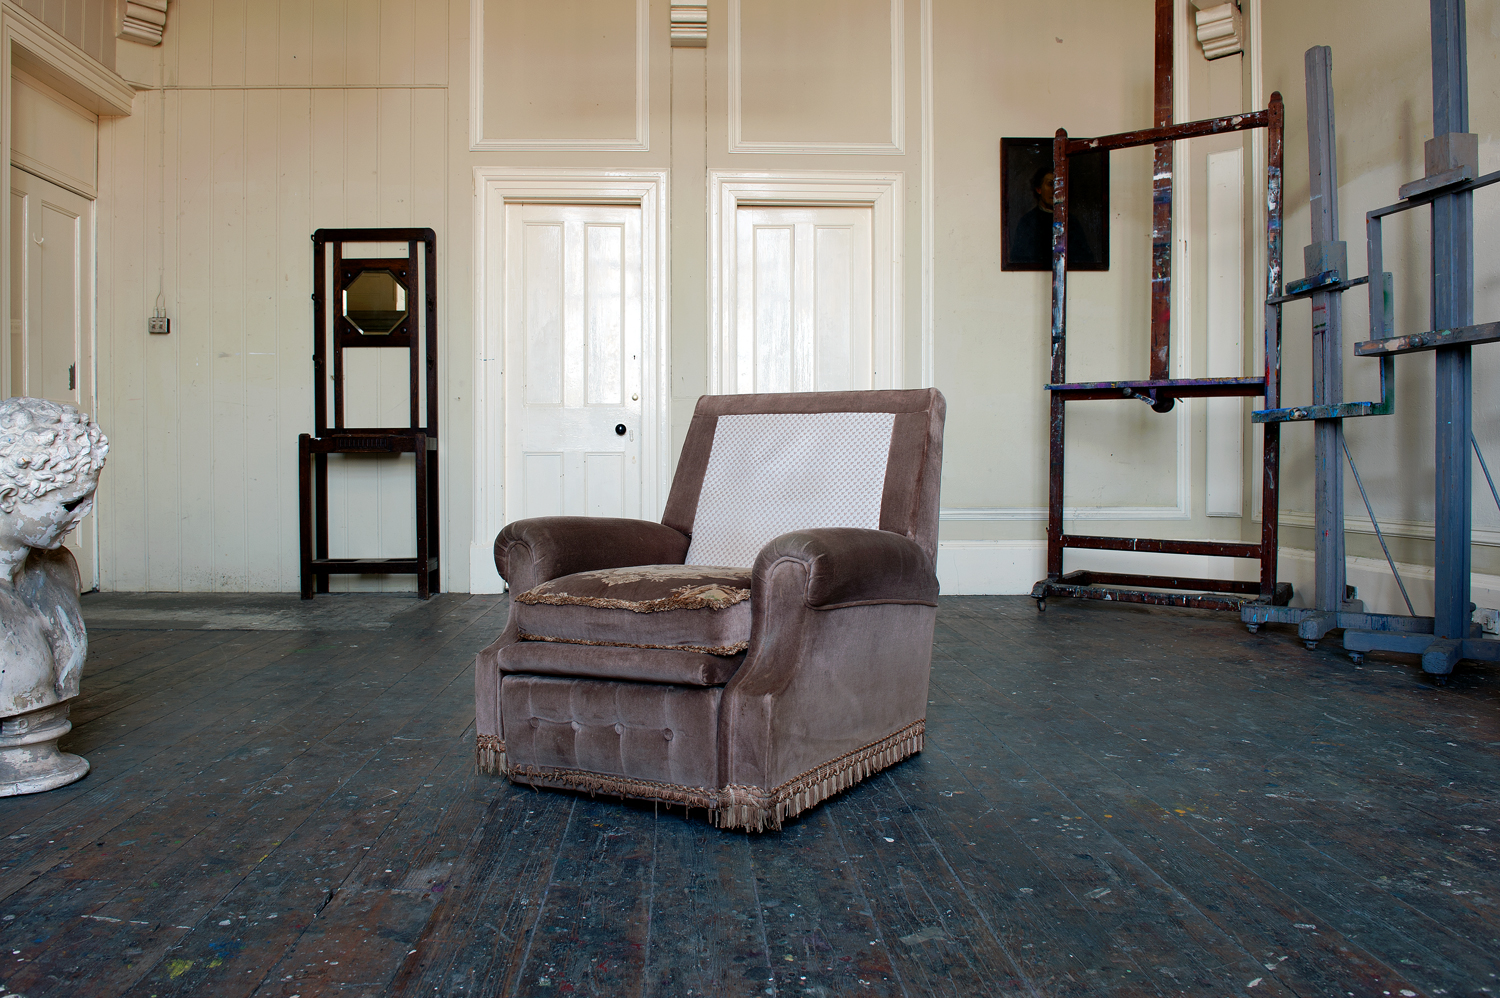 untitled #65 [hospitalfield, arbroath, angus, scotland, 2011]